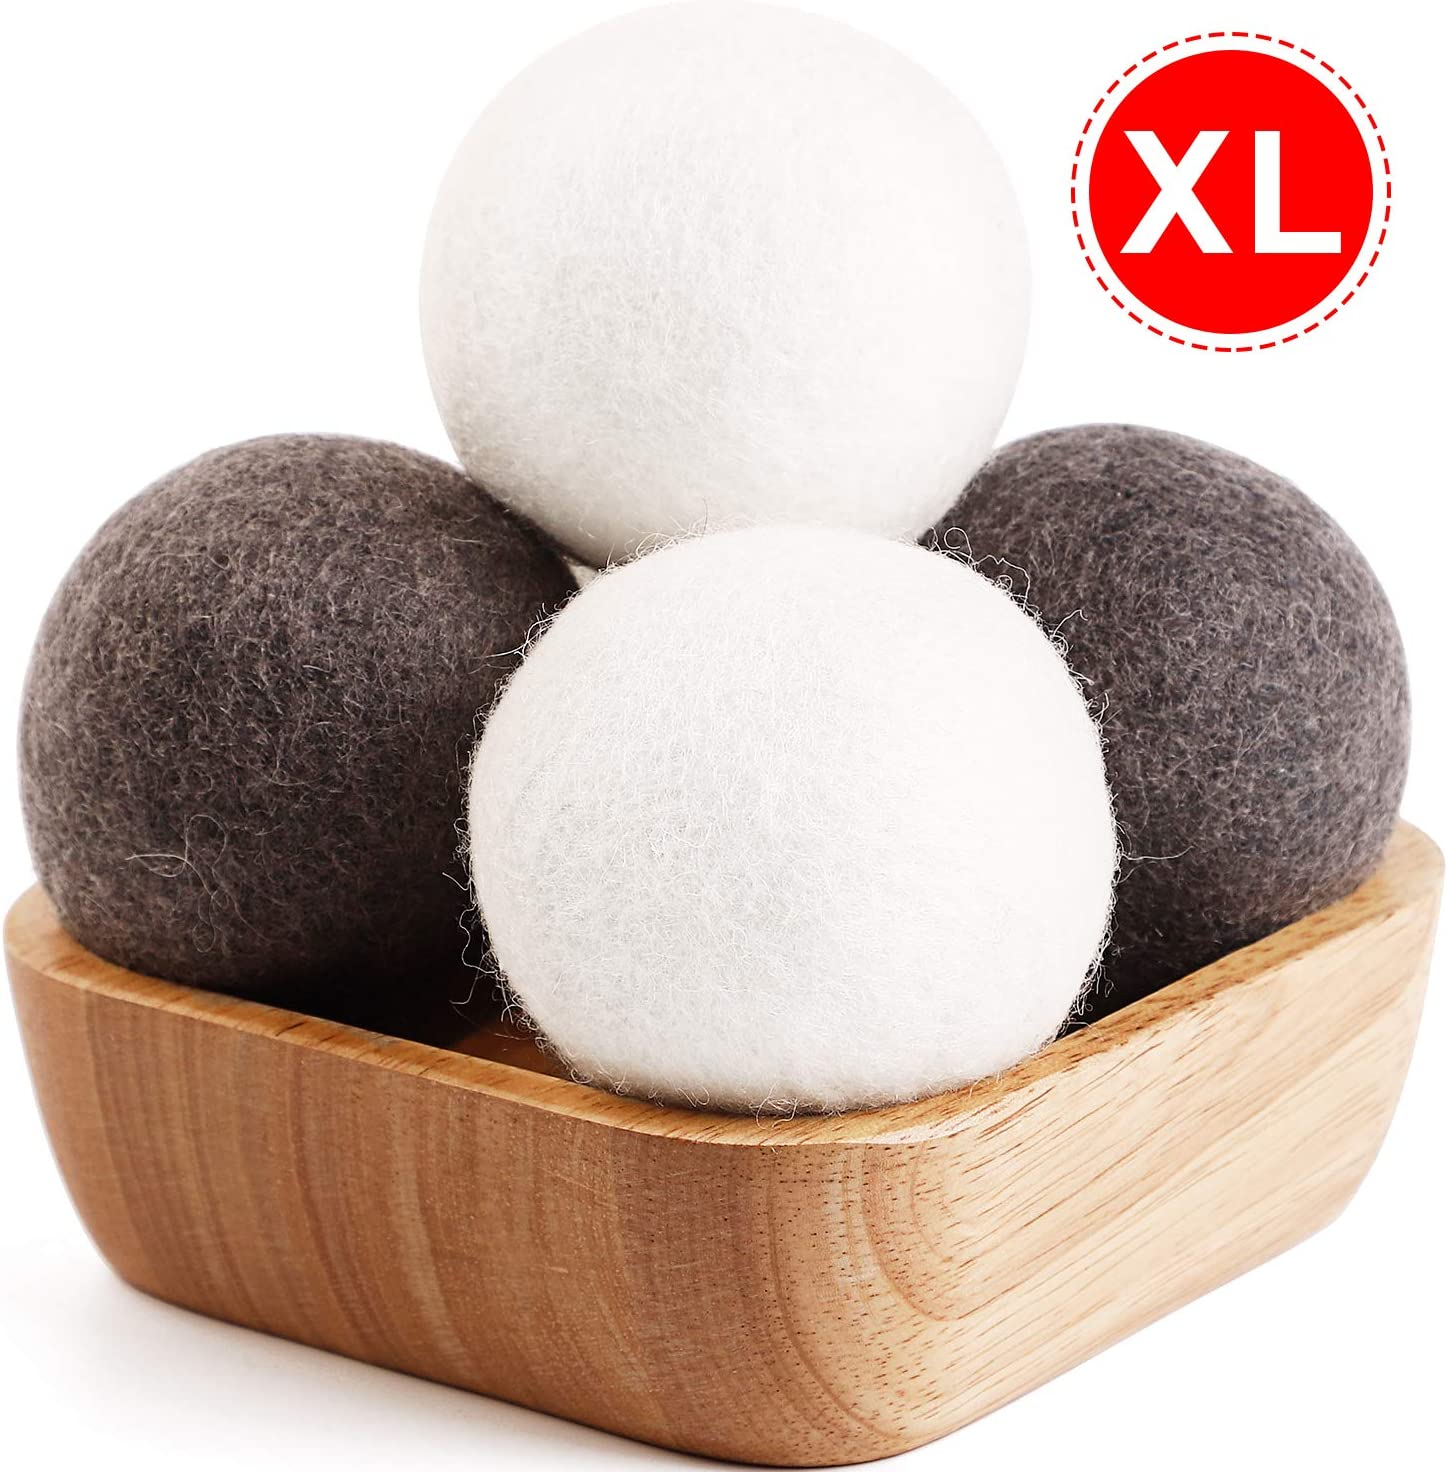 Organic Dryer Balls, 4 Pack XL Laundry Wool Dryer Balls - 100% New Zealand Wool - Handmade 4 Wool Balls, Reduce Wrinkles&Save Drying Time - Alternative to Dryer Sheets Liquid Softener Plastic Balls